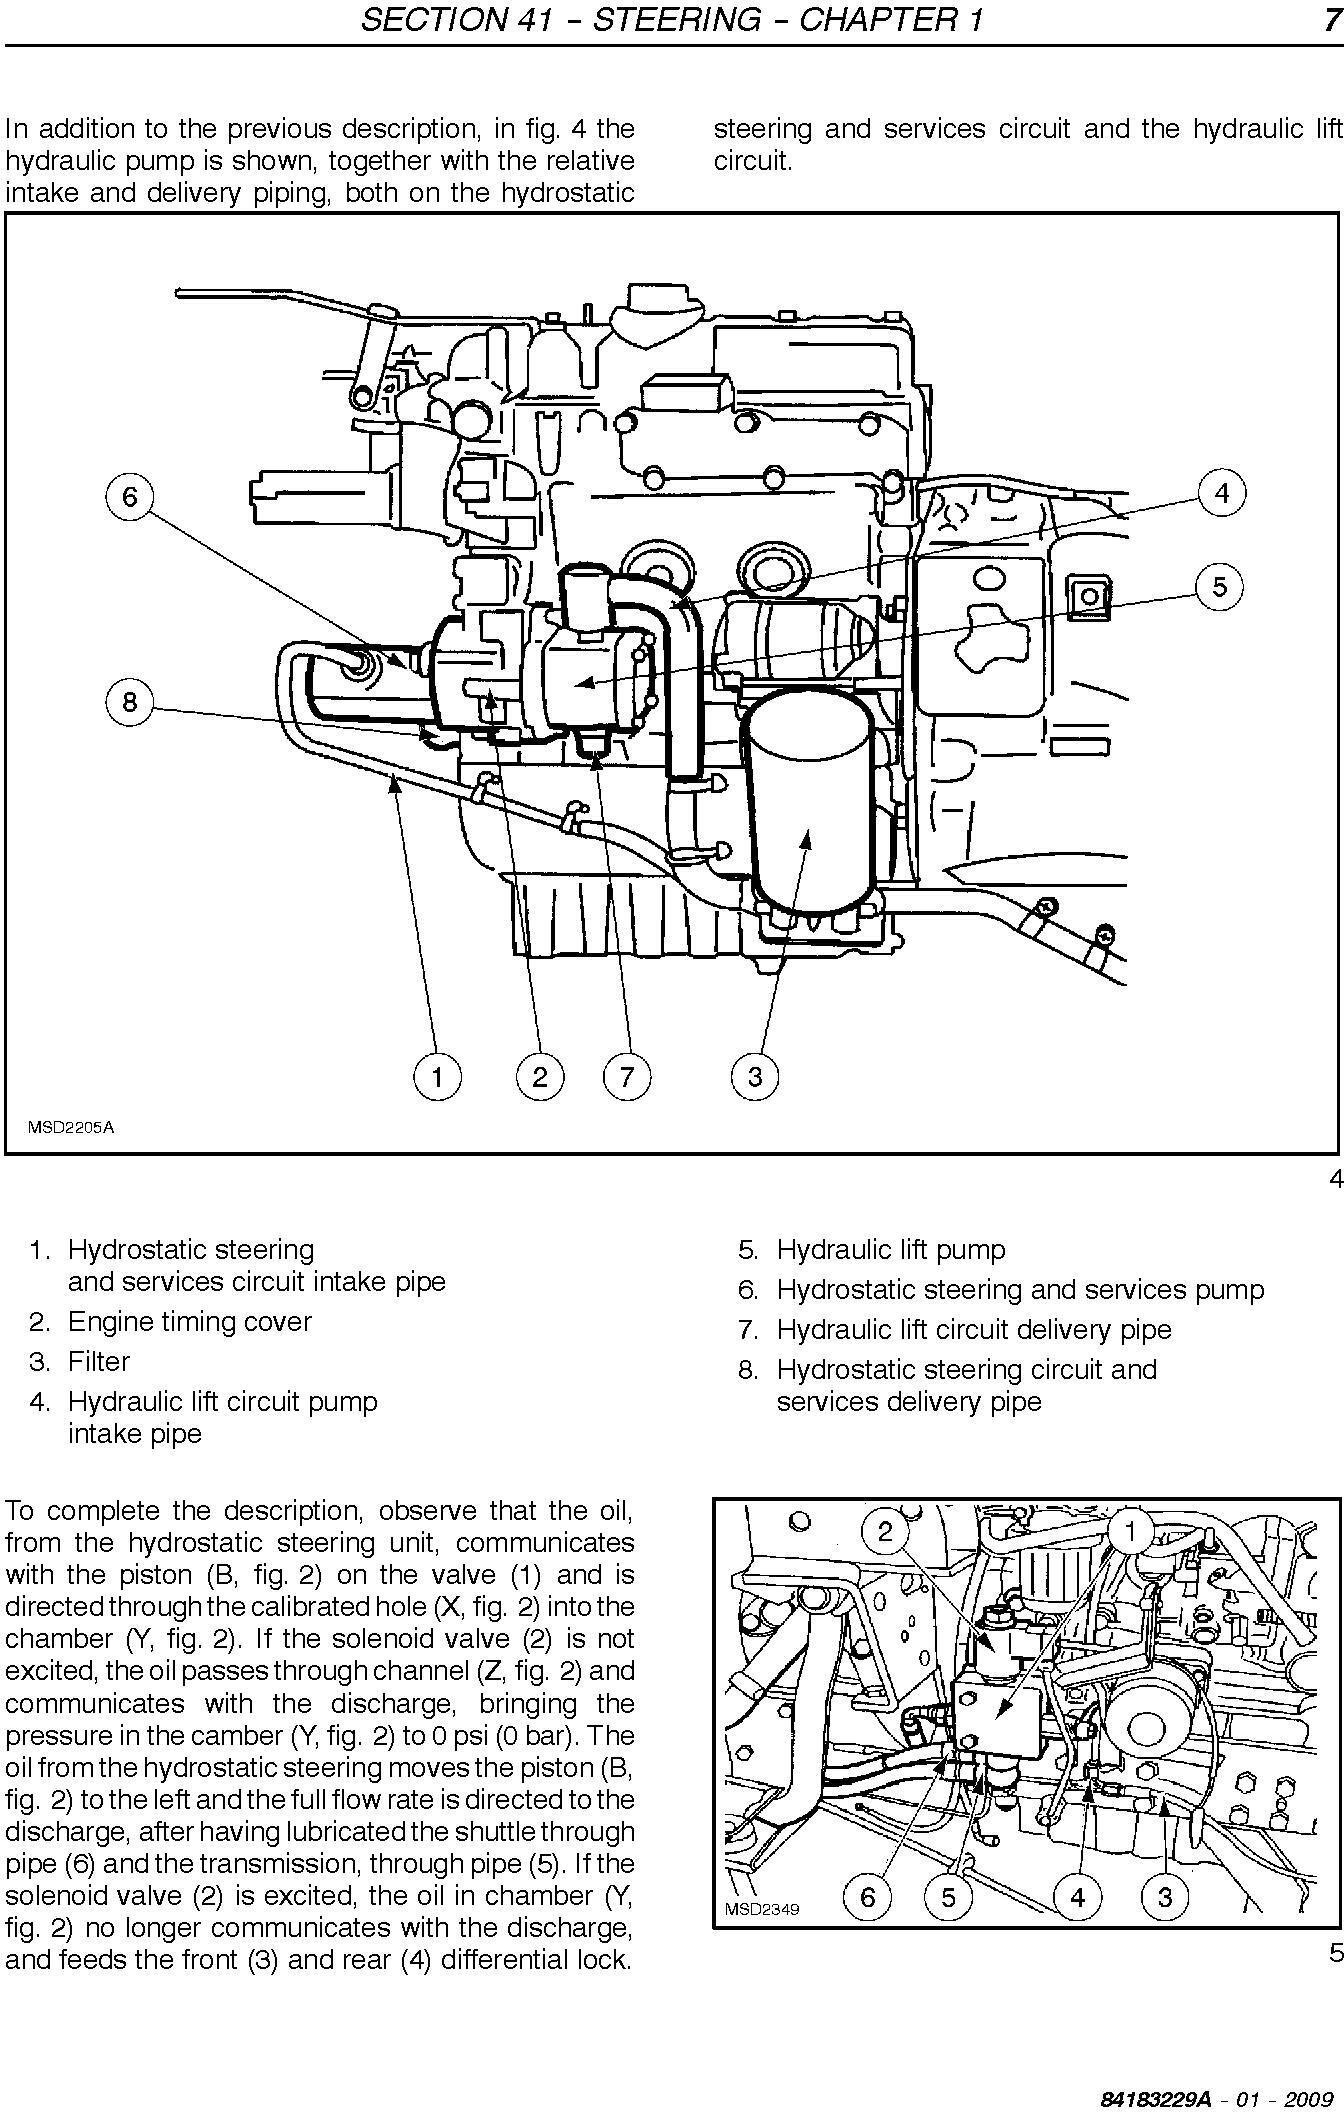 New Holland T3010, T3020, T3030, T3040 Agricultural Tractors Service Manual - 2